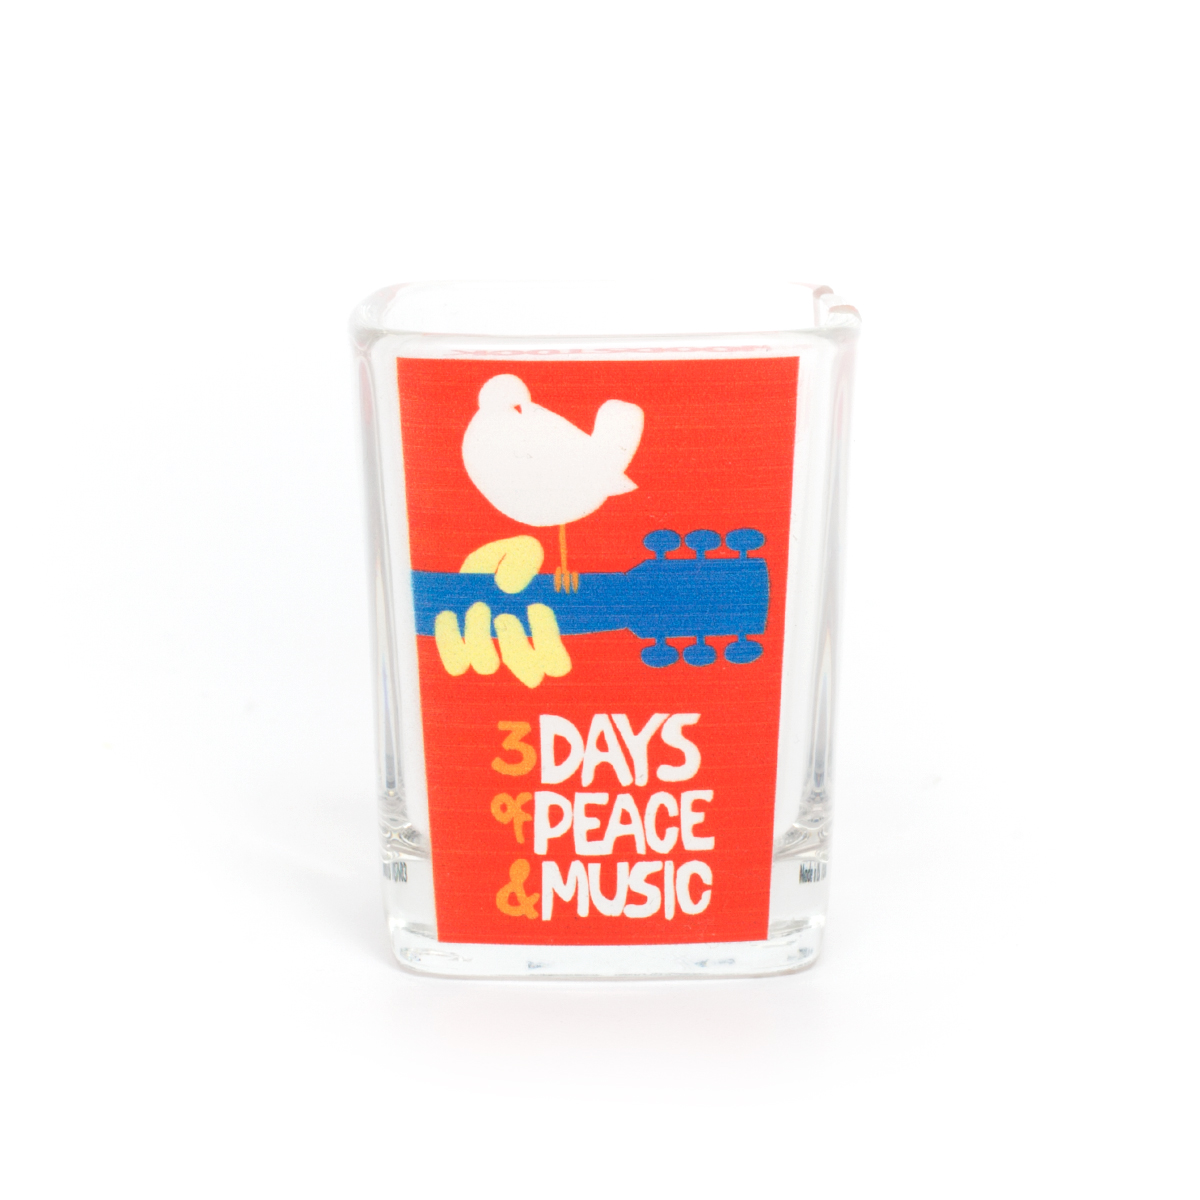 3 Days Of . . . Square Shotglass